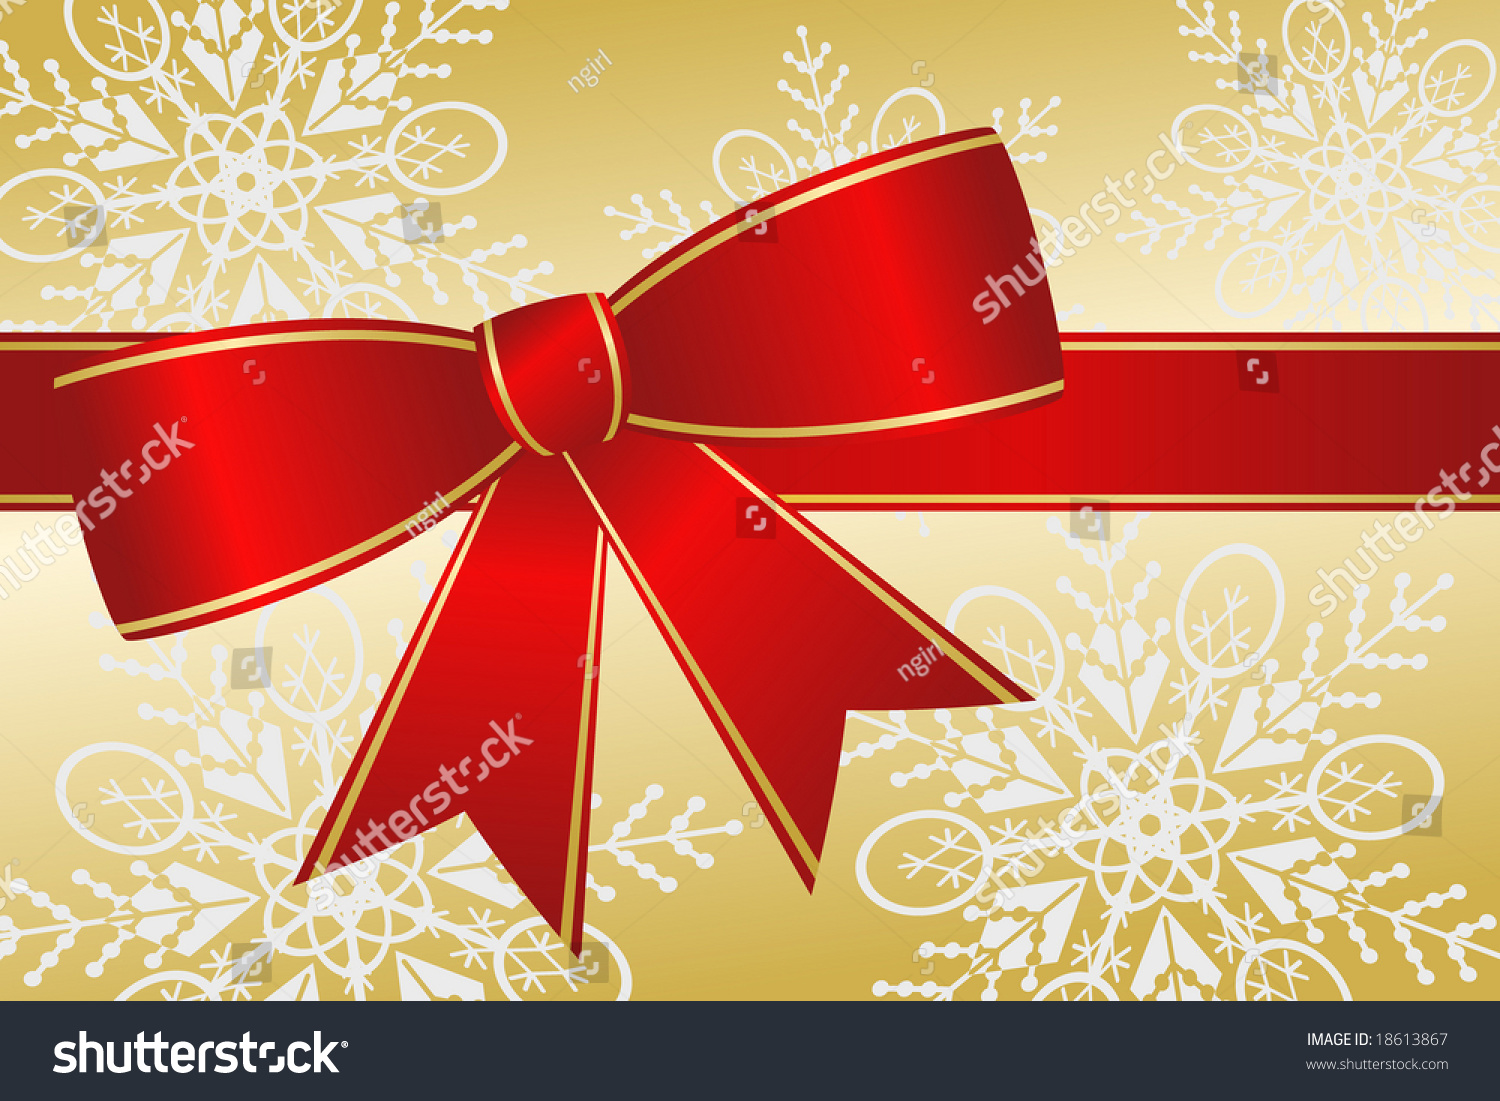 Elegant Christmas Background With Snowflakes Stock Vector: Big Red Christmas Ribbon Bow Has Gold Trim And Satin